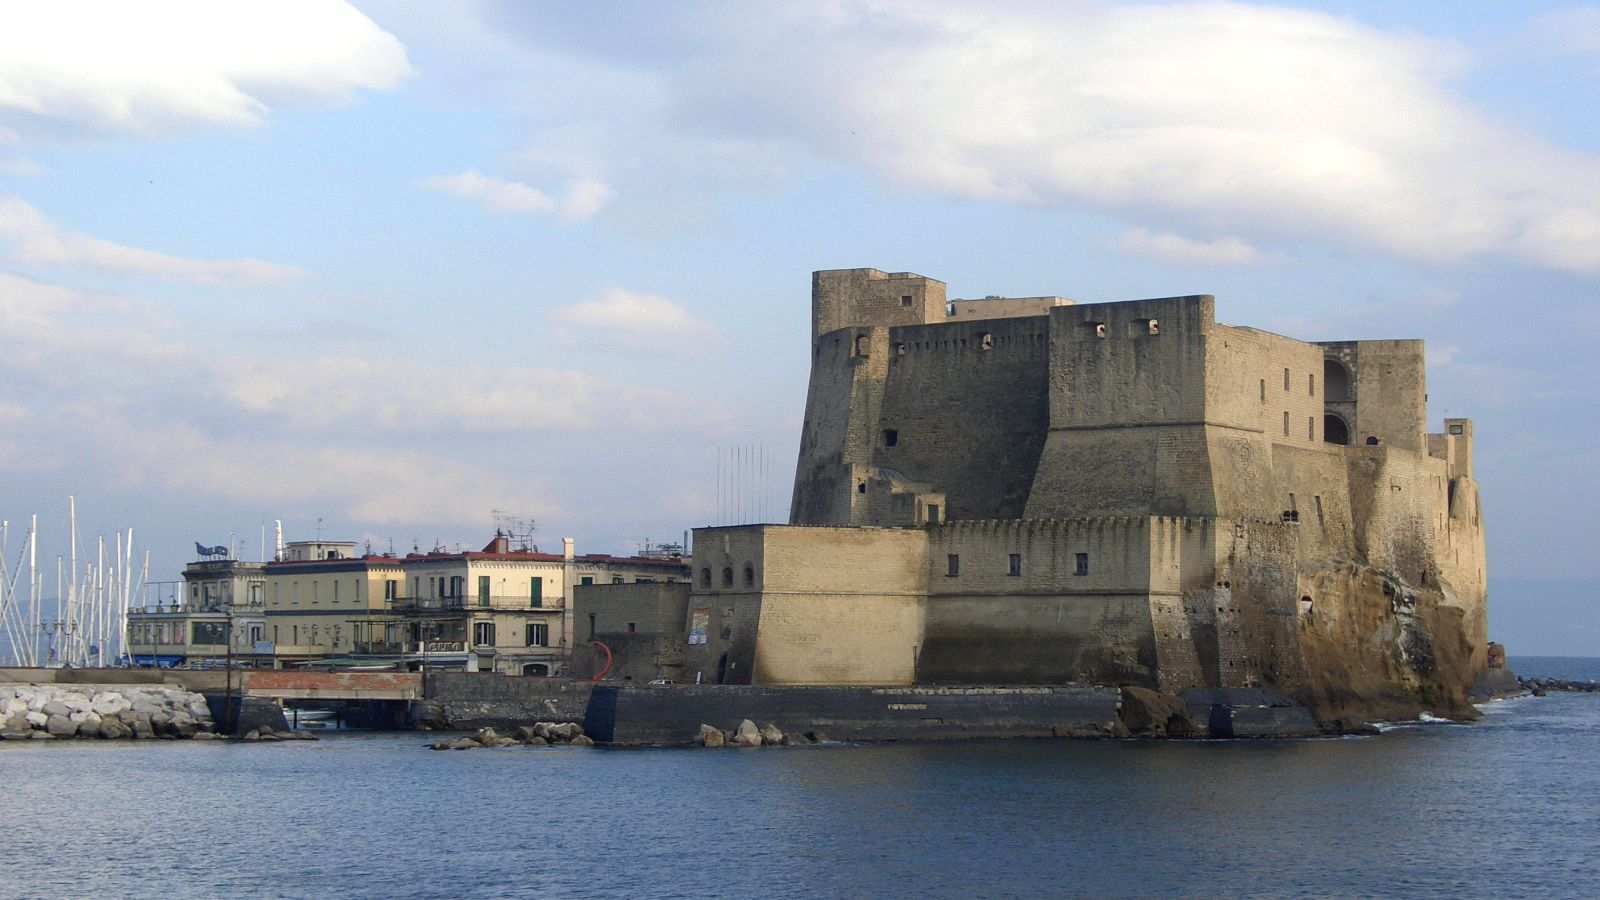 The formidable Castel dell'Ovo